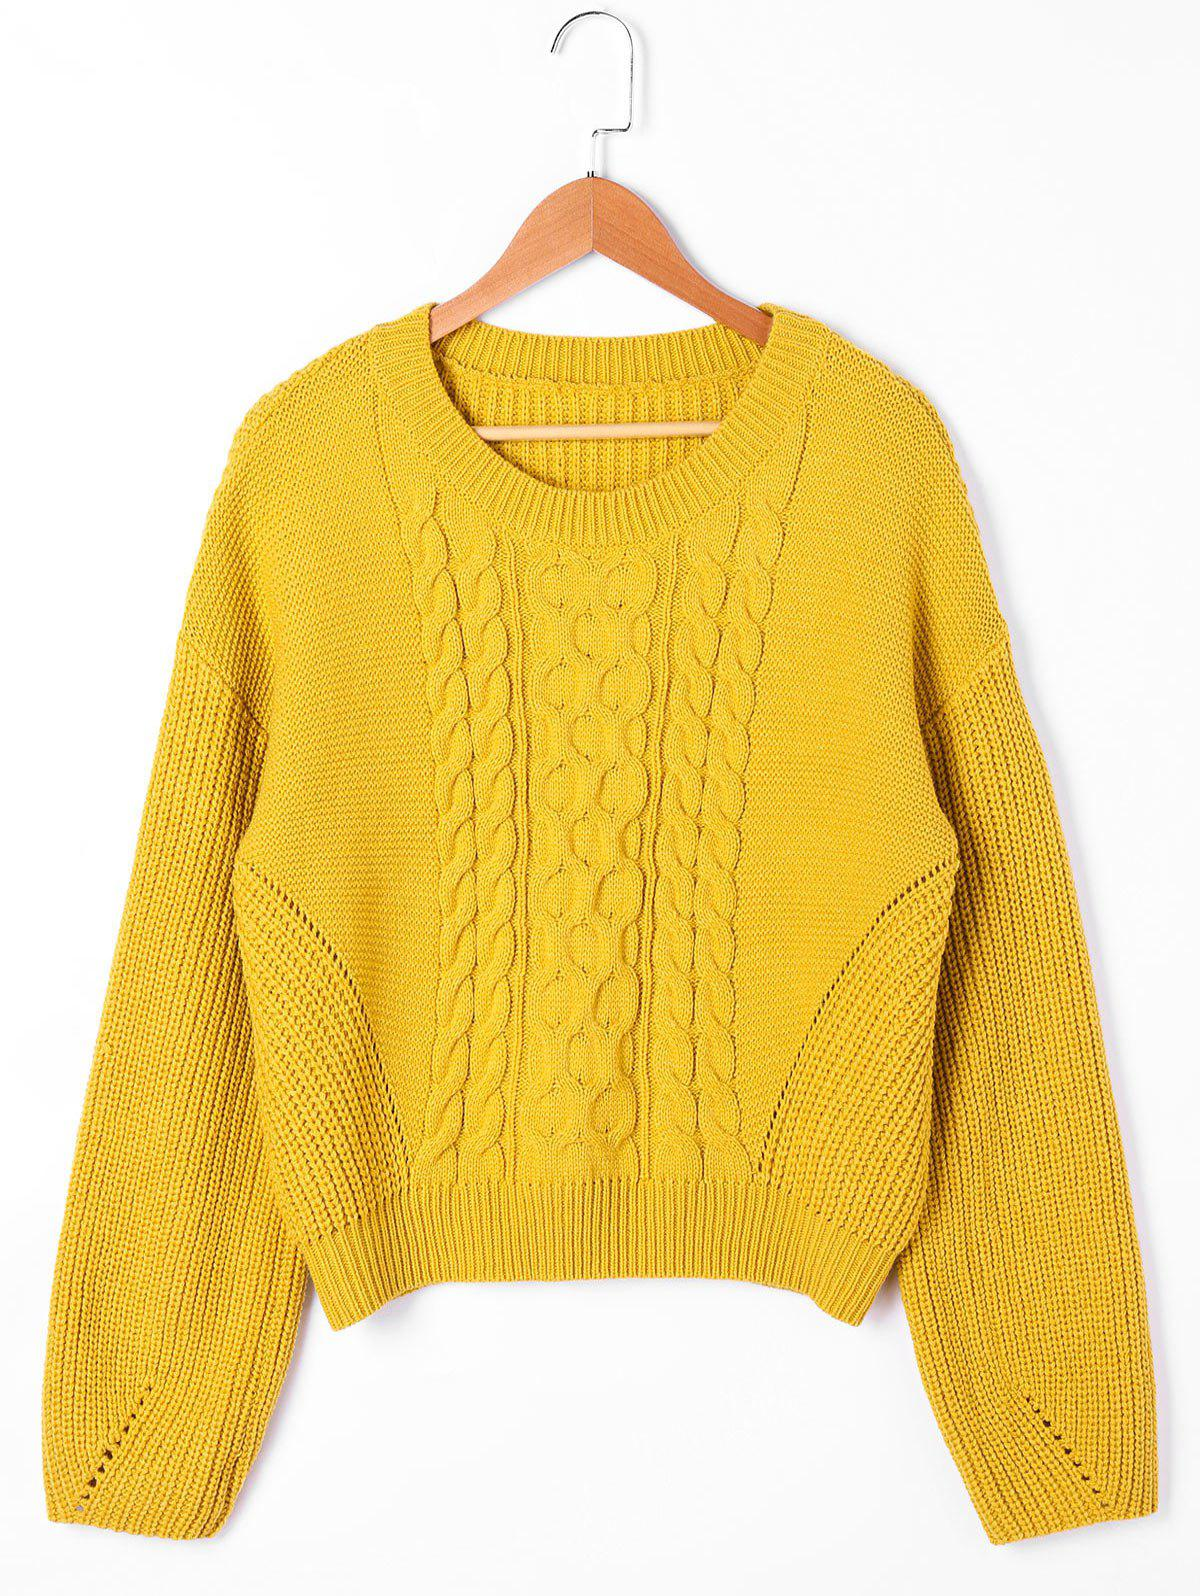 Drop Shoulder Ribbed Cable Knit Sweater 227553403